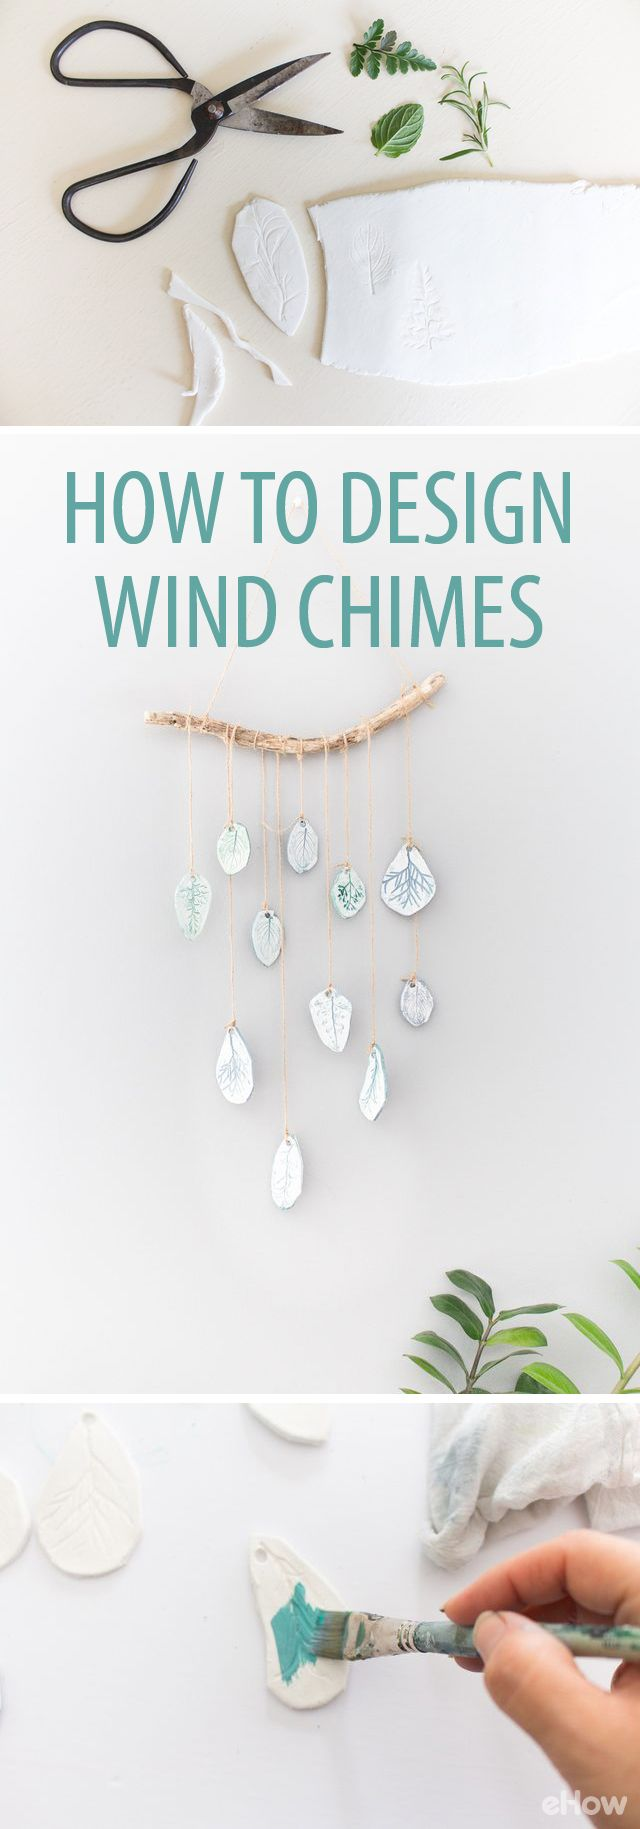 These DIY wind chimes are our favorite! Surprispingly easy to design and DIY, this is a great long weekend project even though it only takes a short amount of time to make it! http://www.ehow.com/how_5479496_design-wind-chimes.html?utm_source=pinterest.com&utm_medium=referral&utm_content=freestyle&utm_campaign=fanpage